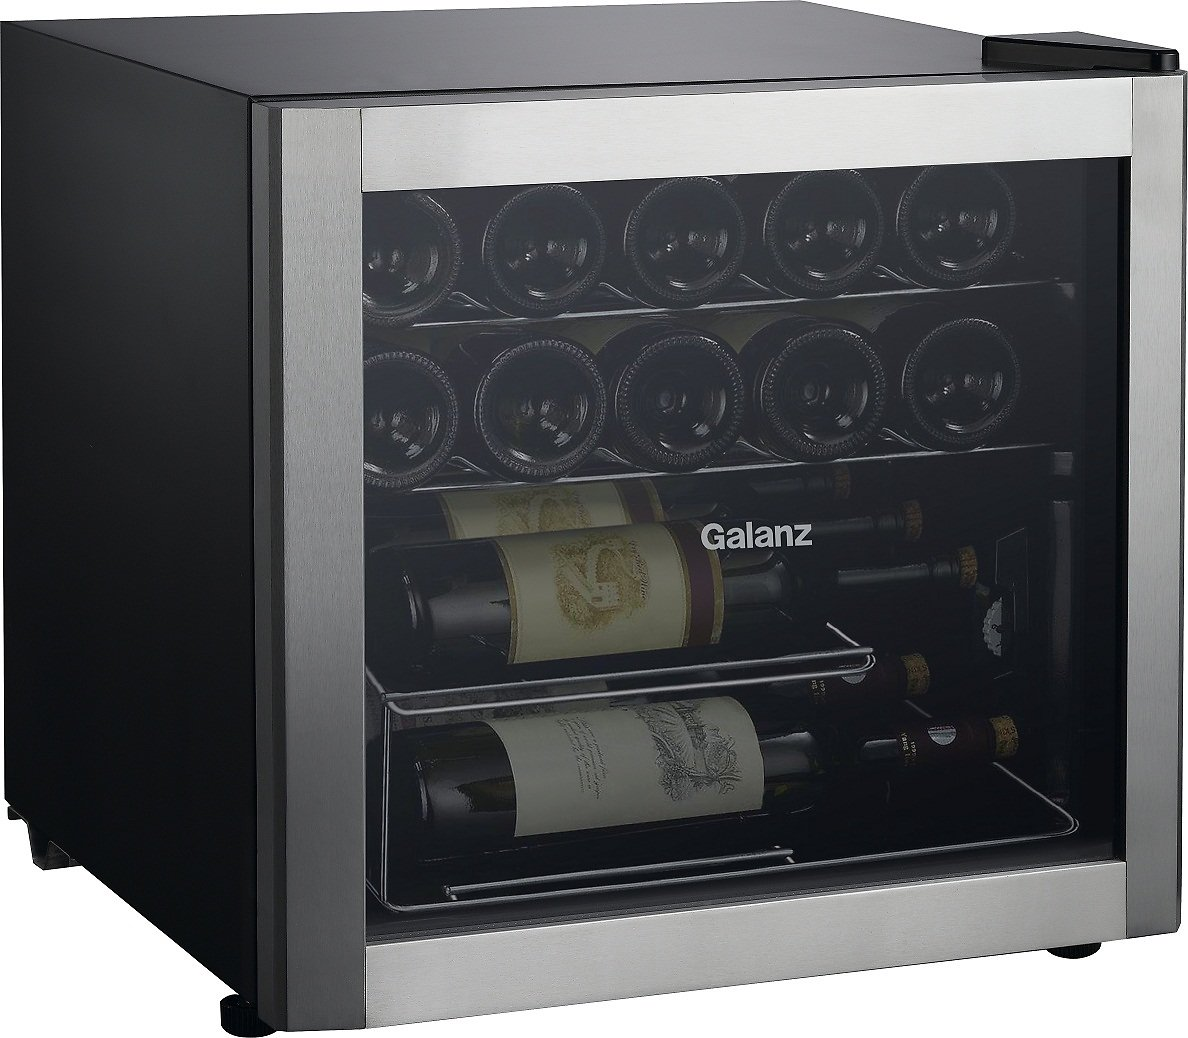 Galanz 16-Bottle Wine Cooler GLW18S, Stainless Steel Steel Do